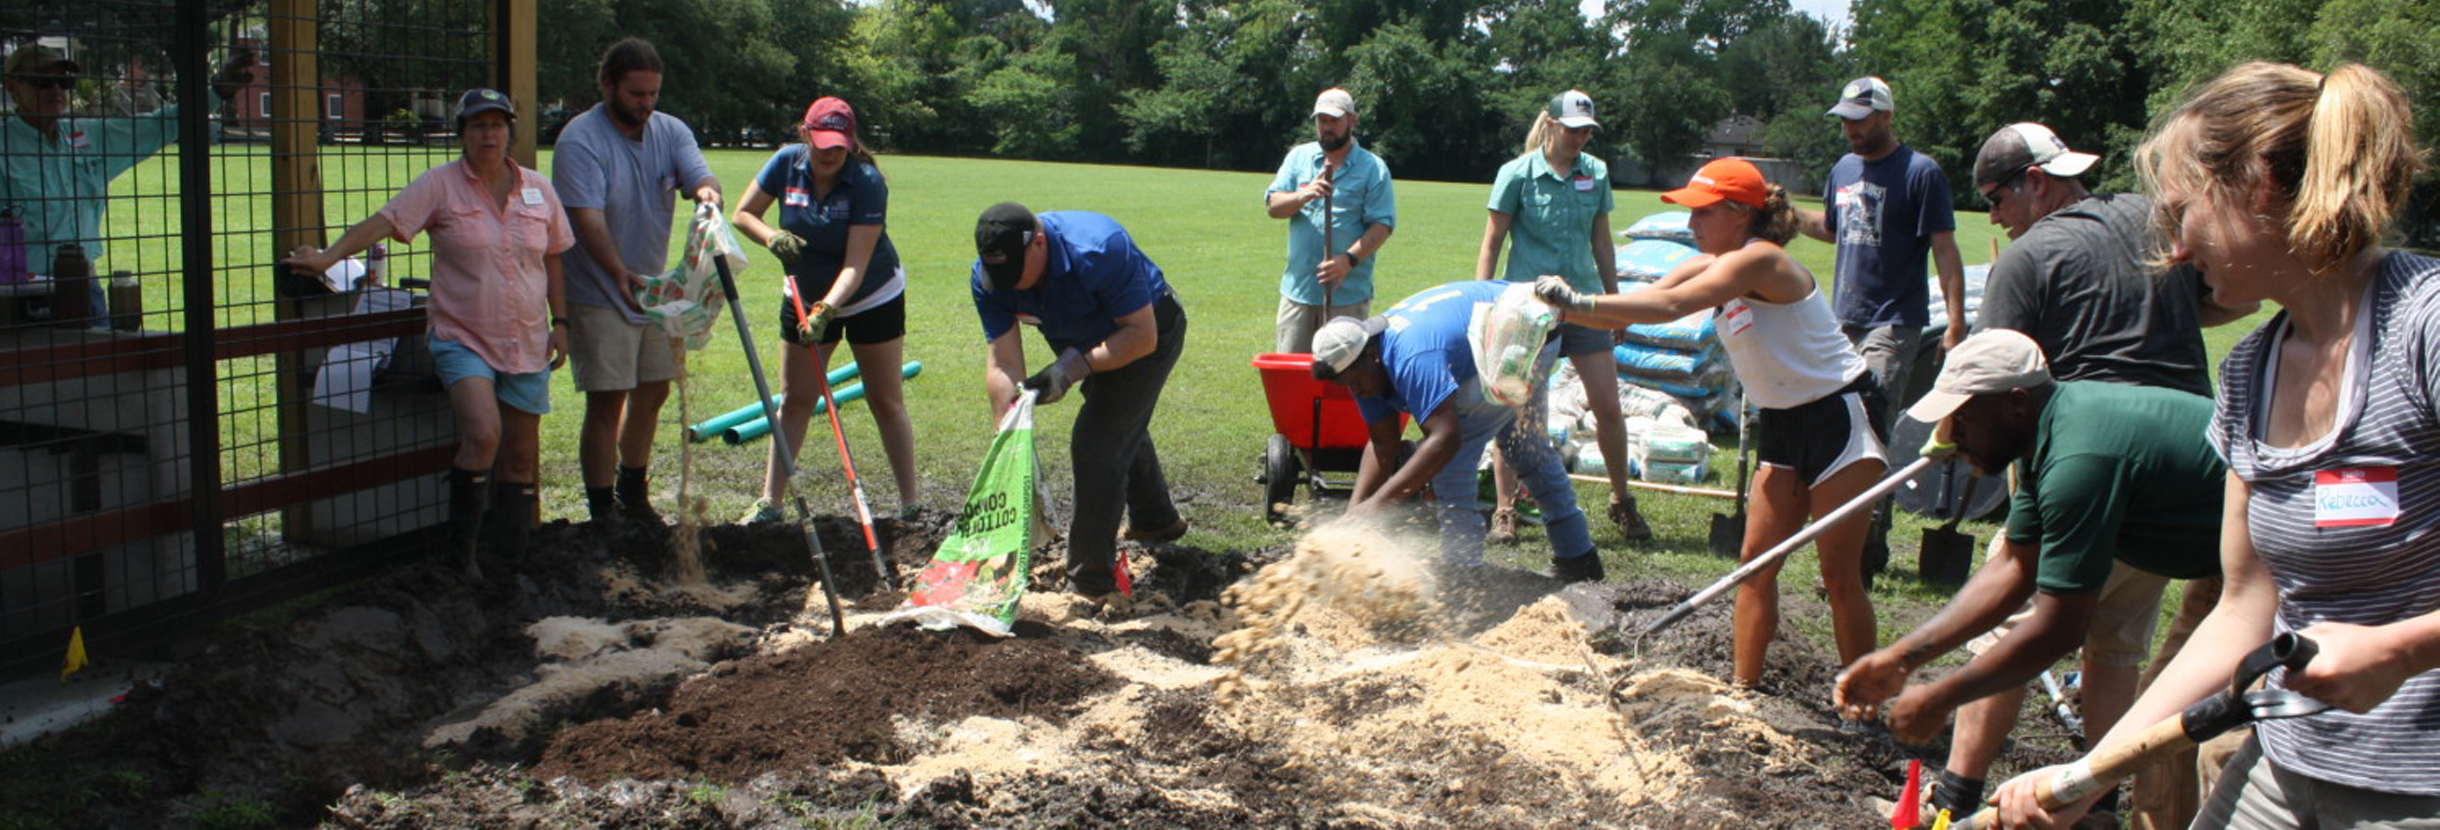 Participants filed work with Clemson Extension Rain Garden Workshop